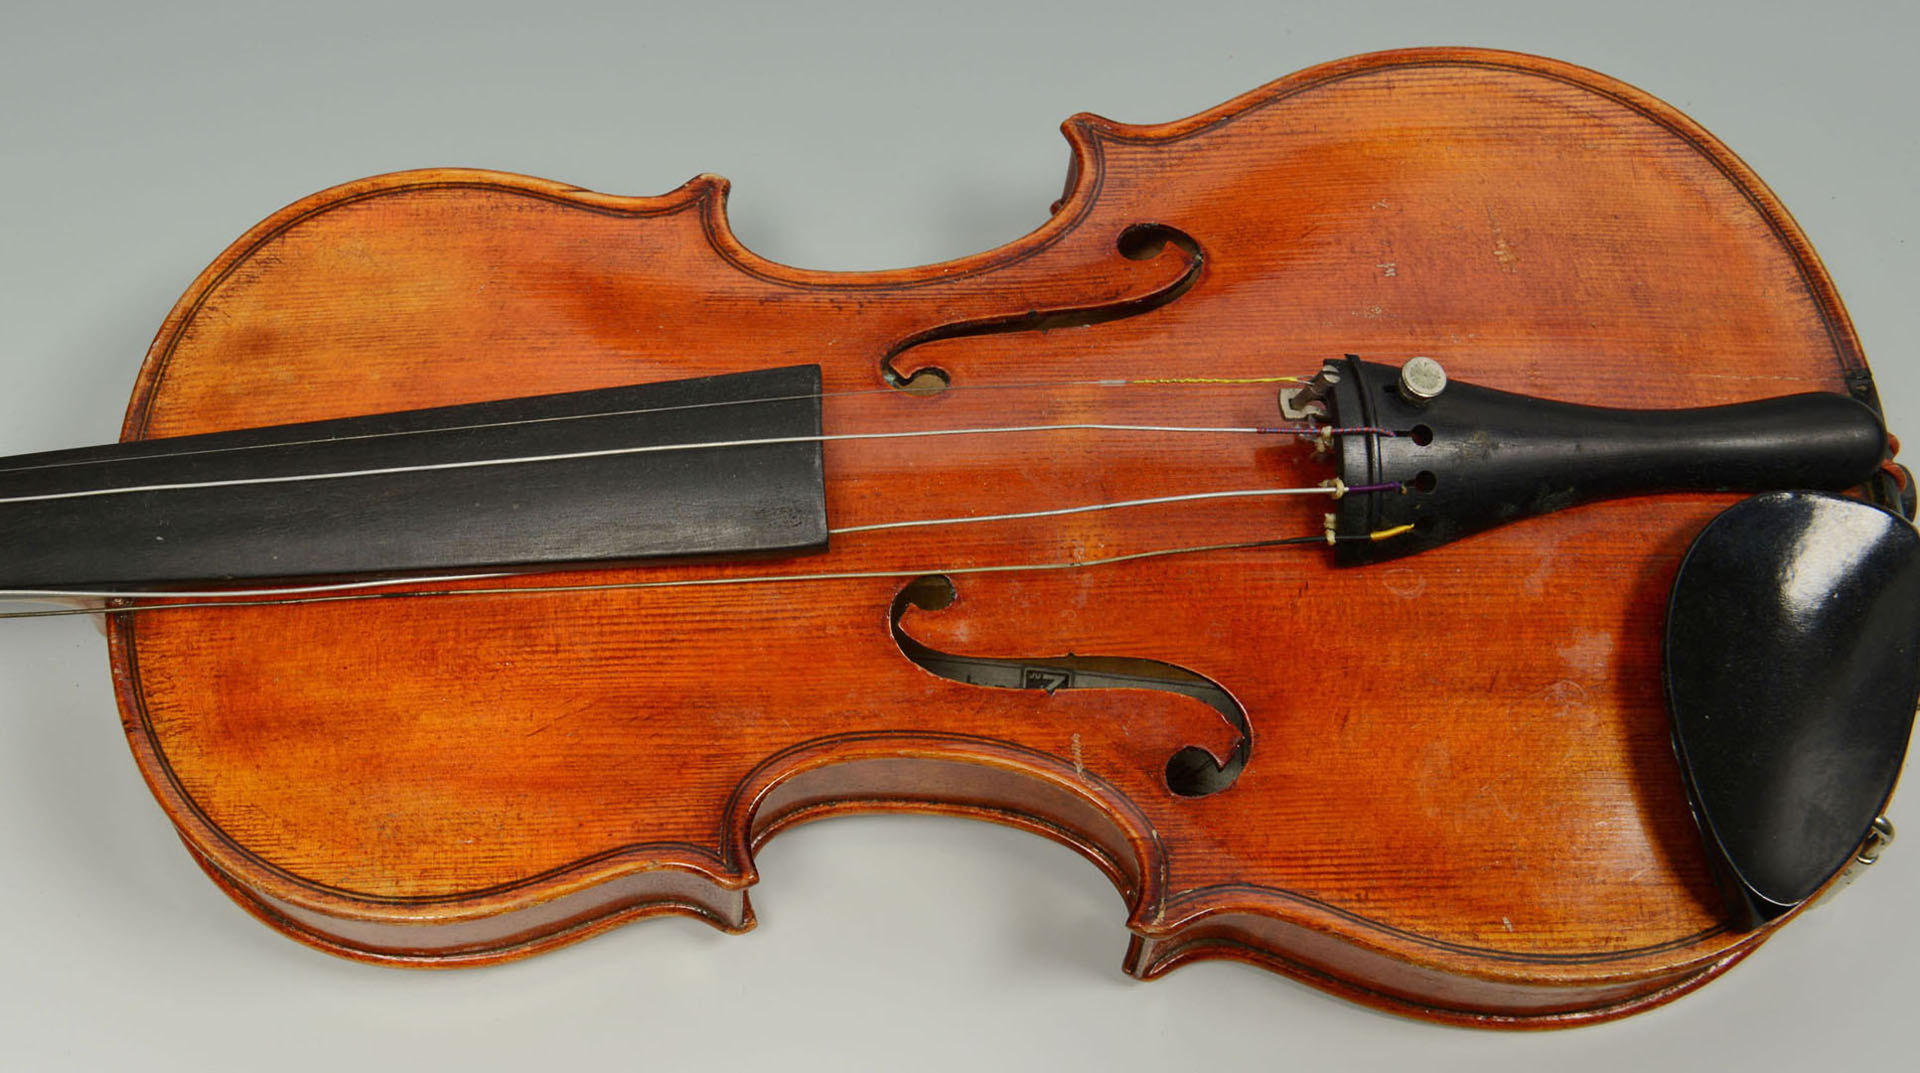 Lot 685: John Juzek labeled violin with bow and case